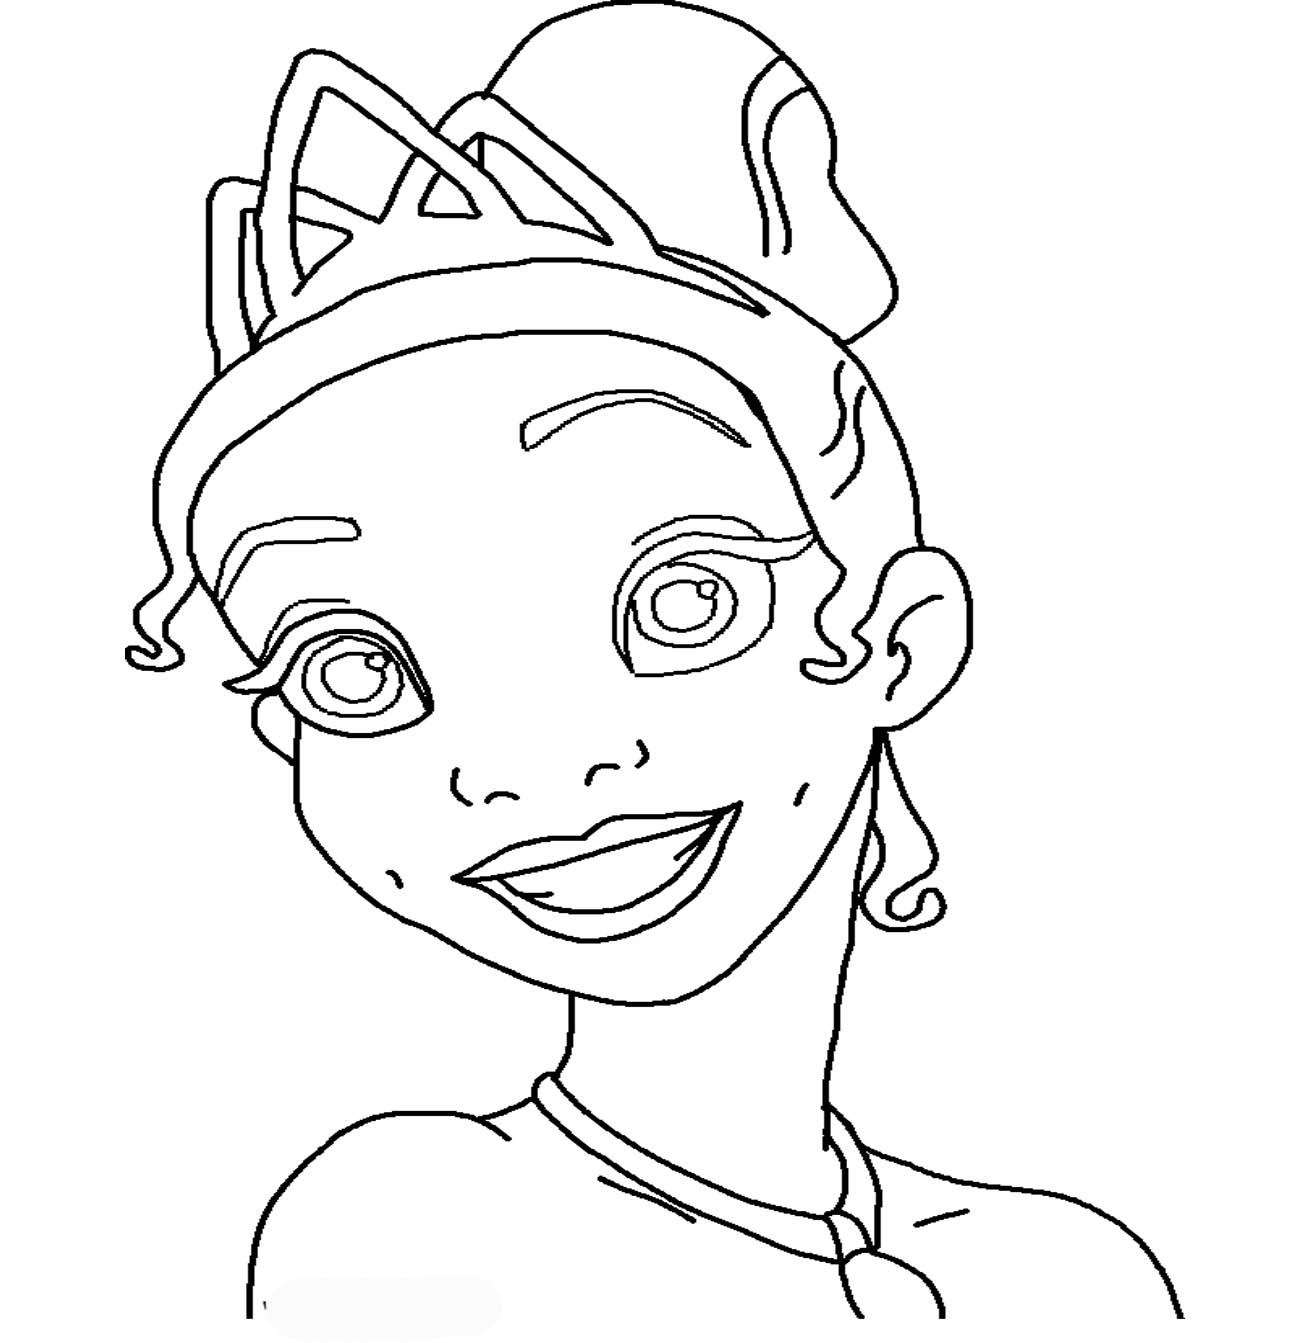 coloring pages for girls disney - photo#22